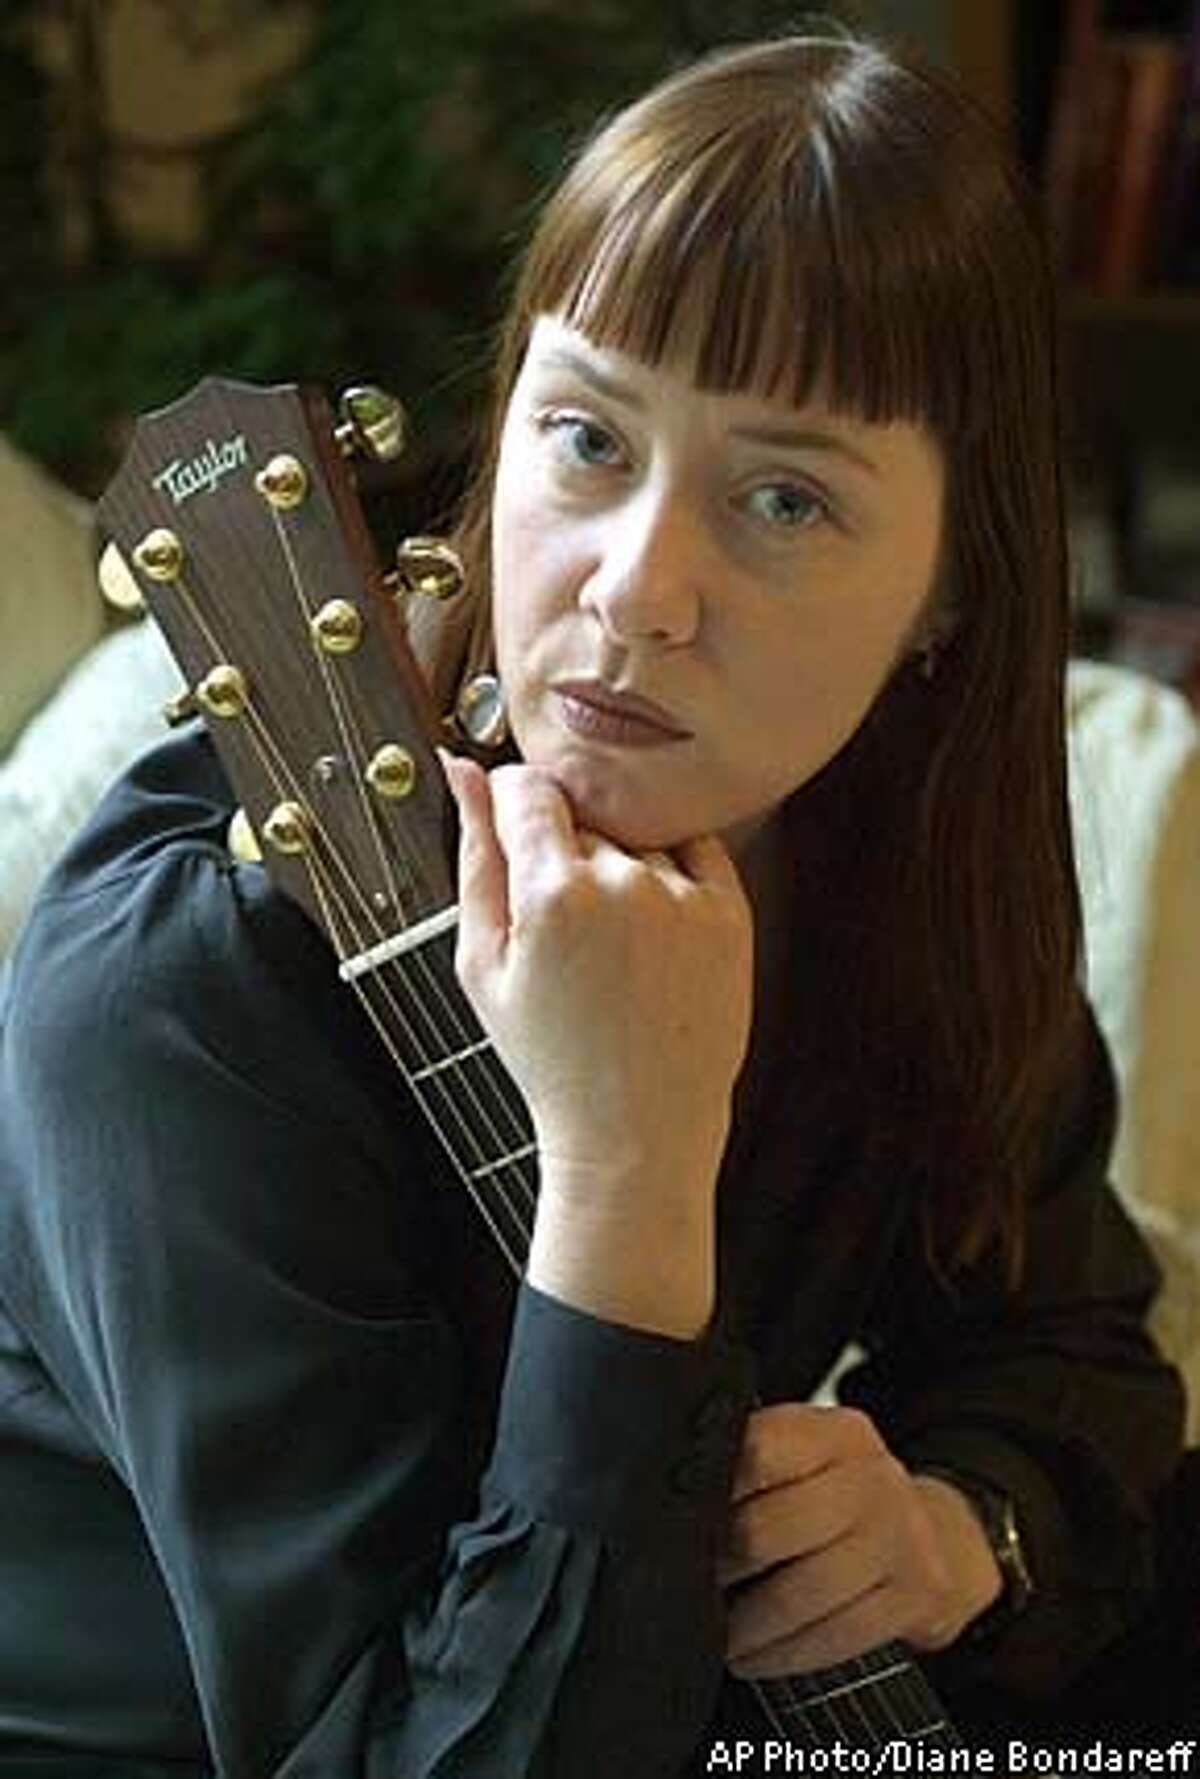 Singer-songwriter poses in her apartment Thursday, May 9, 2002, in New York. Vega collected songs by various artists about the Sept. 11 attacks for her new album,